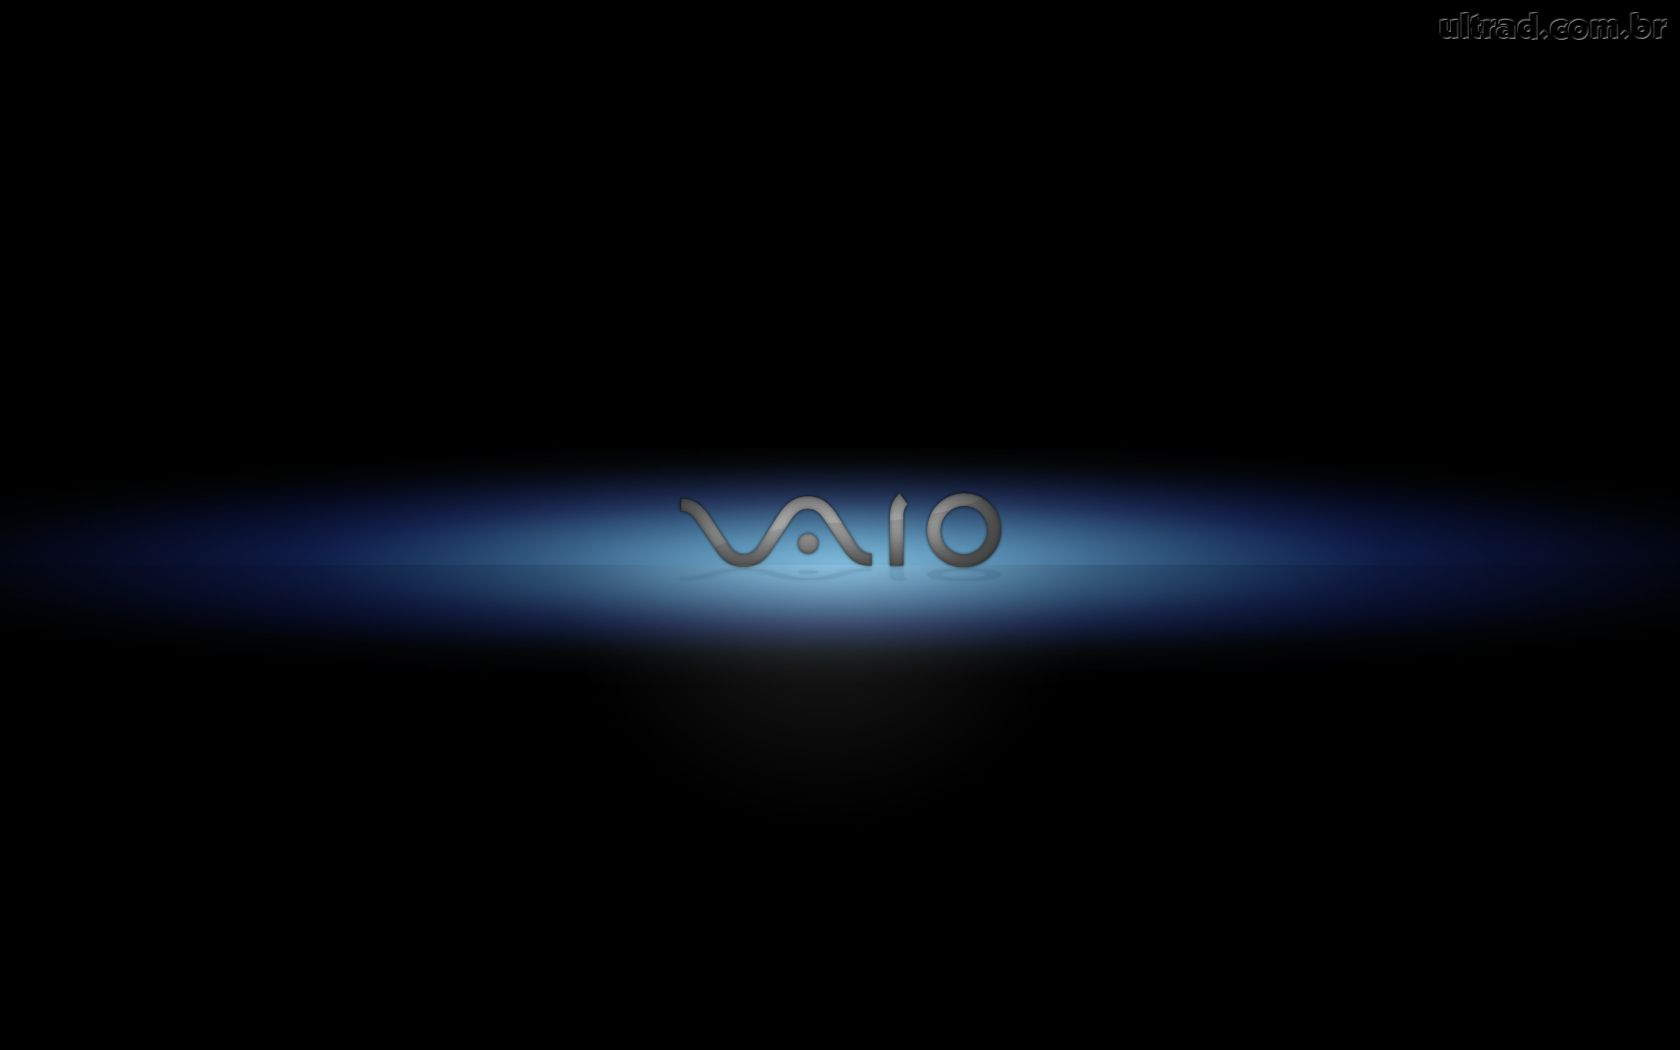 Vaio Wall Paper Black: VAIO Wallpapers 1366x768 HD